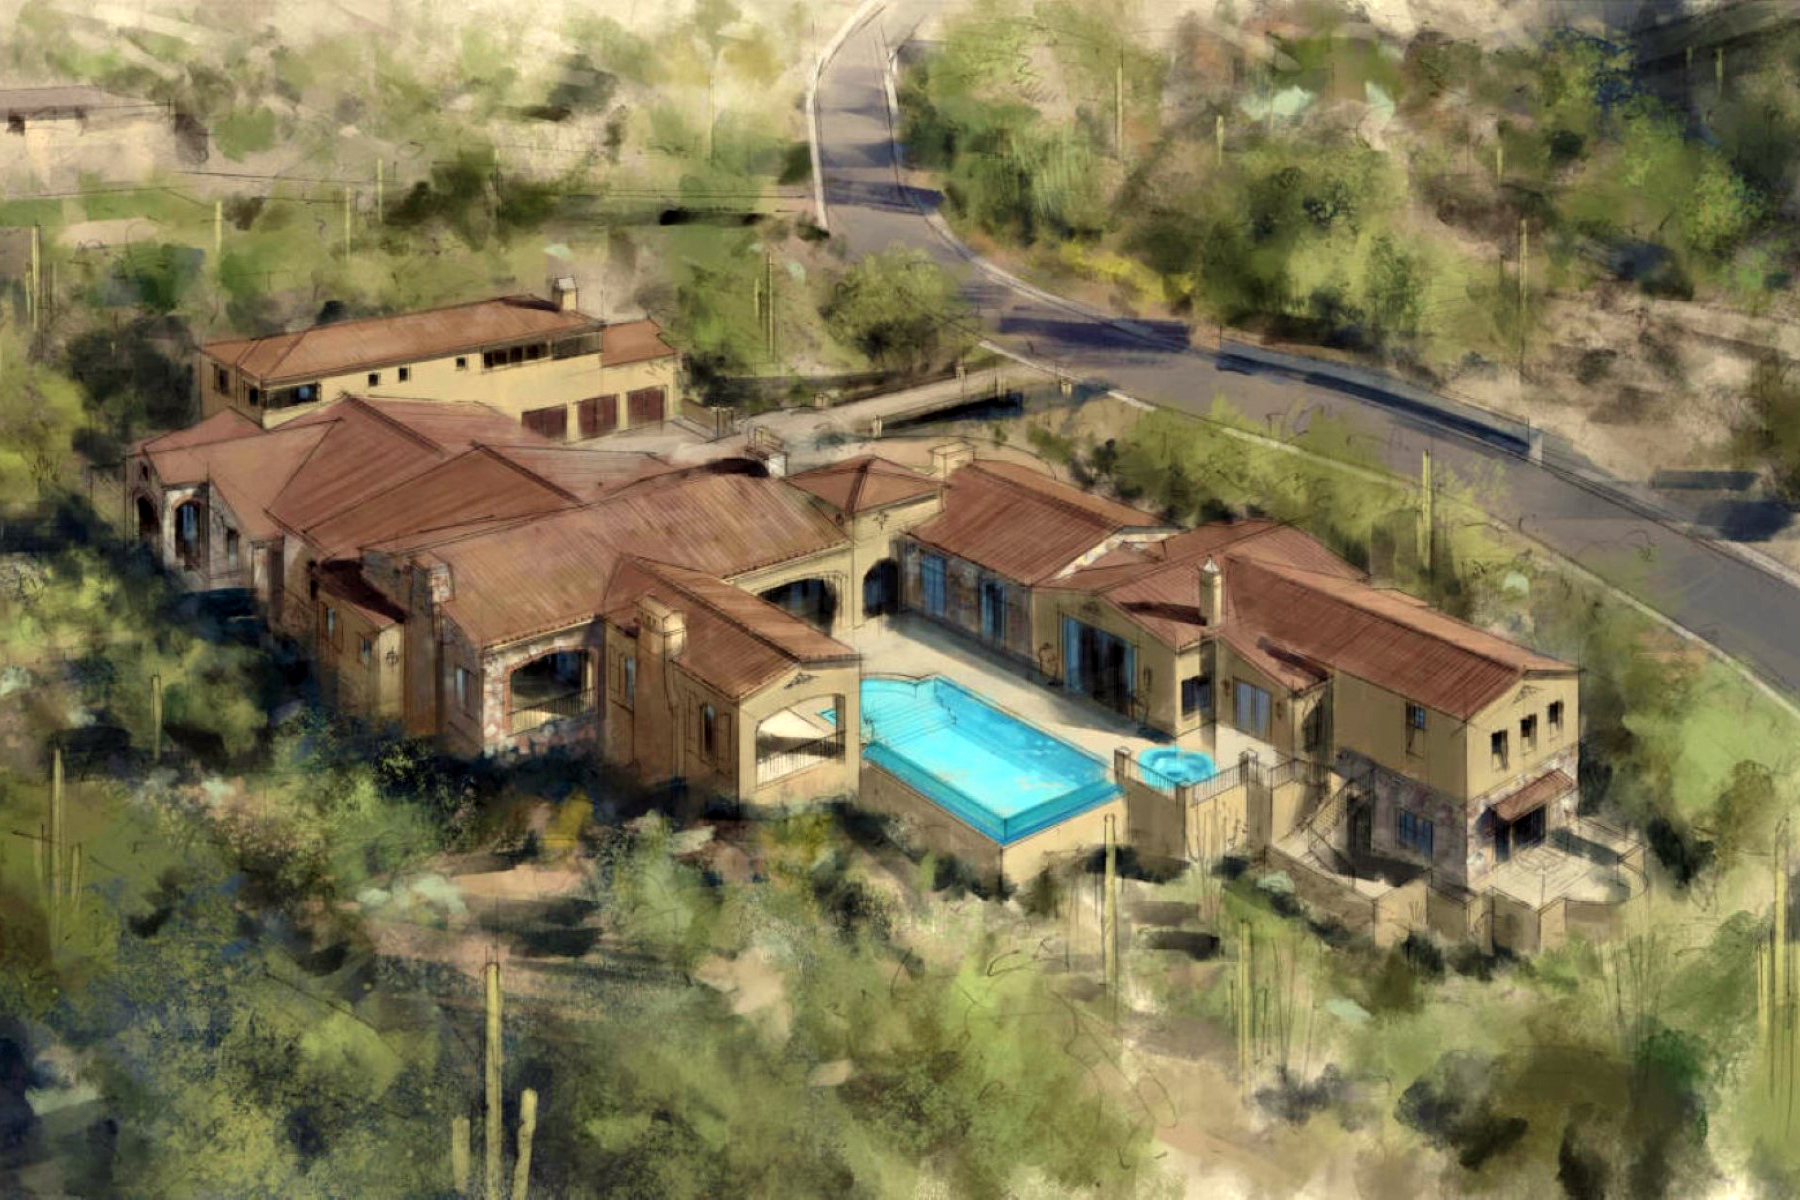 Частный односемейный дом для того Продажа на Stunning Silverleaf Luxury New Build With Valley Views 11004 E Feathersong Lane Scottsdale, Аризона 85255 Соединенные Штаты